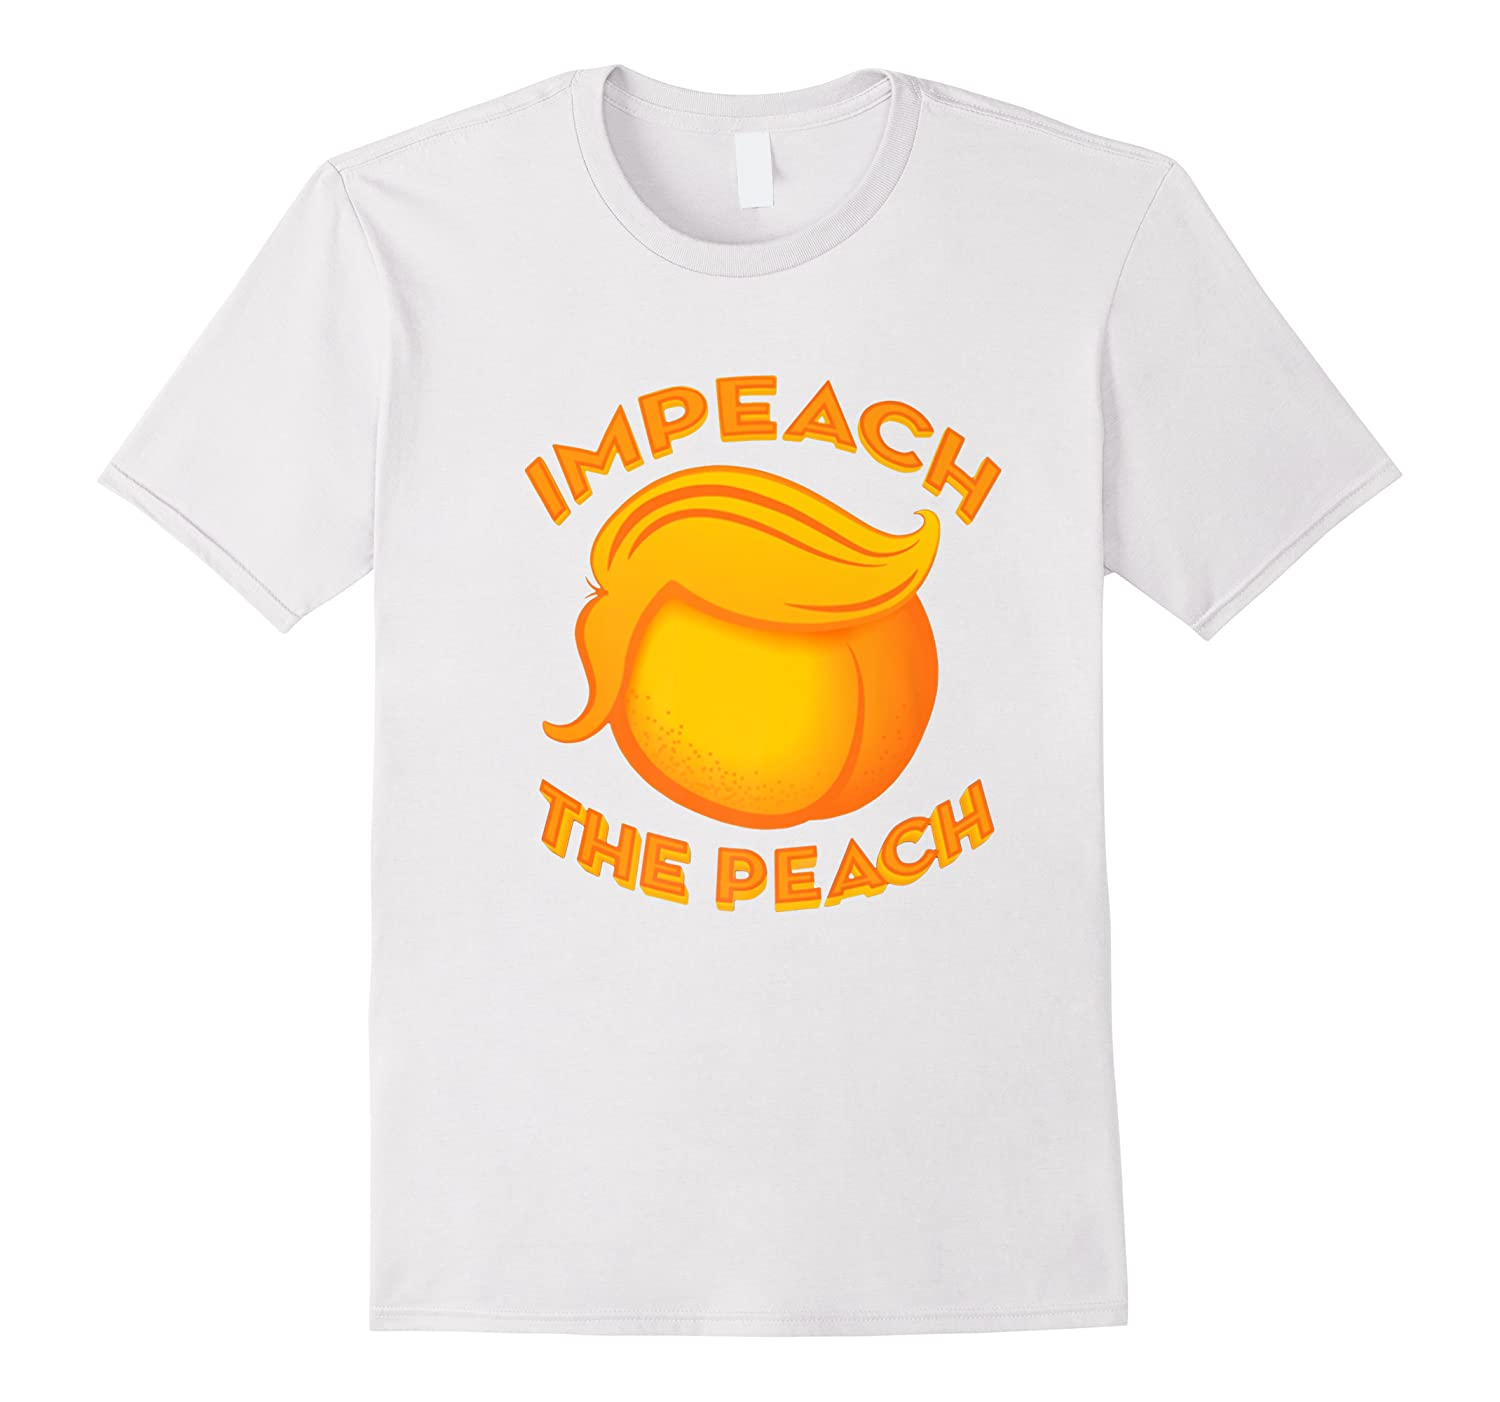 Impeach Halloween Premium T Shirt For Girls And Adults